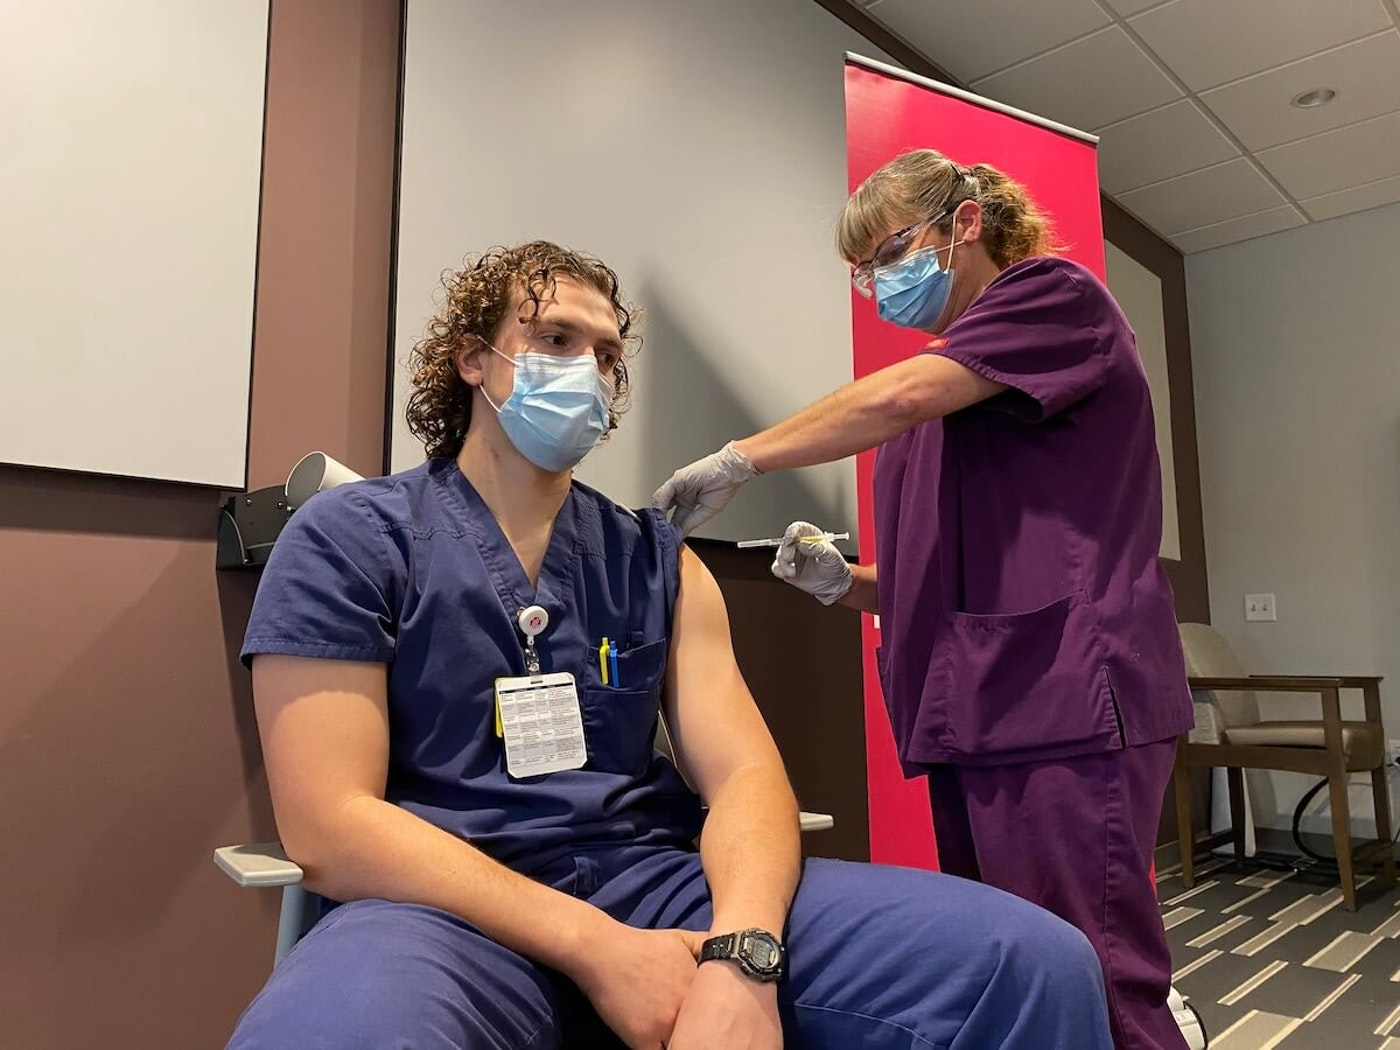 Jacob Luttropp, a registered nurse at Marshfield Medical Center-Eau Claire who works directly with COVID-19 patients, became the first healthcare worker there to receive a vaccine to protect against the virus on Dec. 18. (Julian Emerson photo).